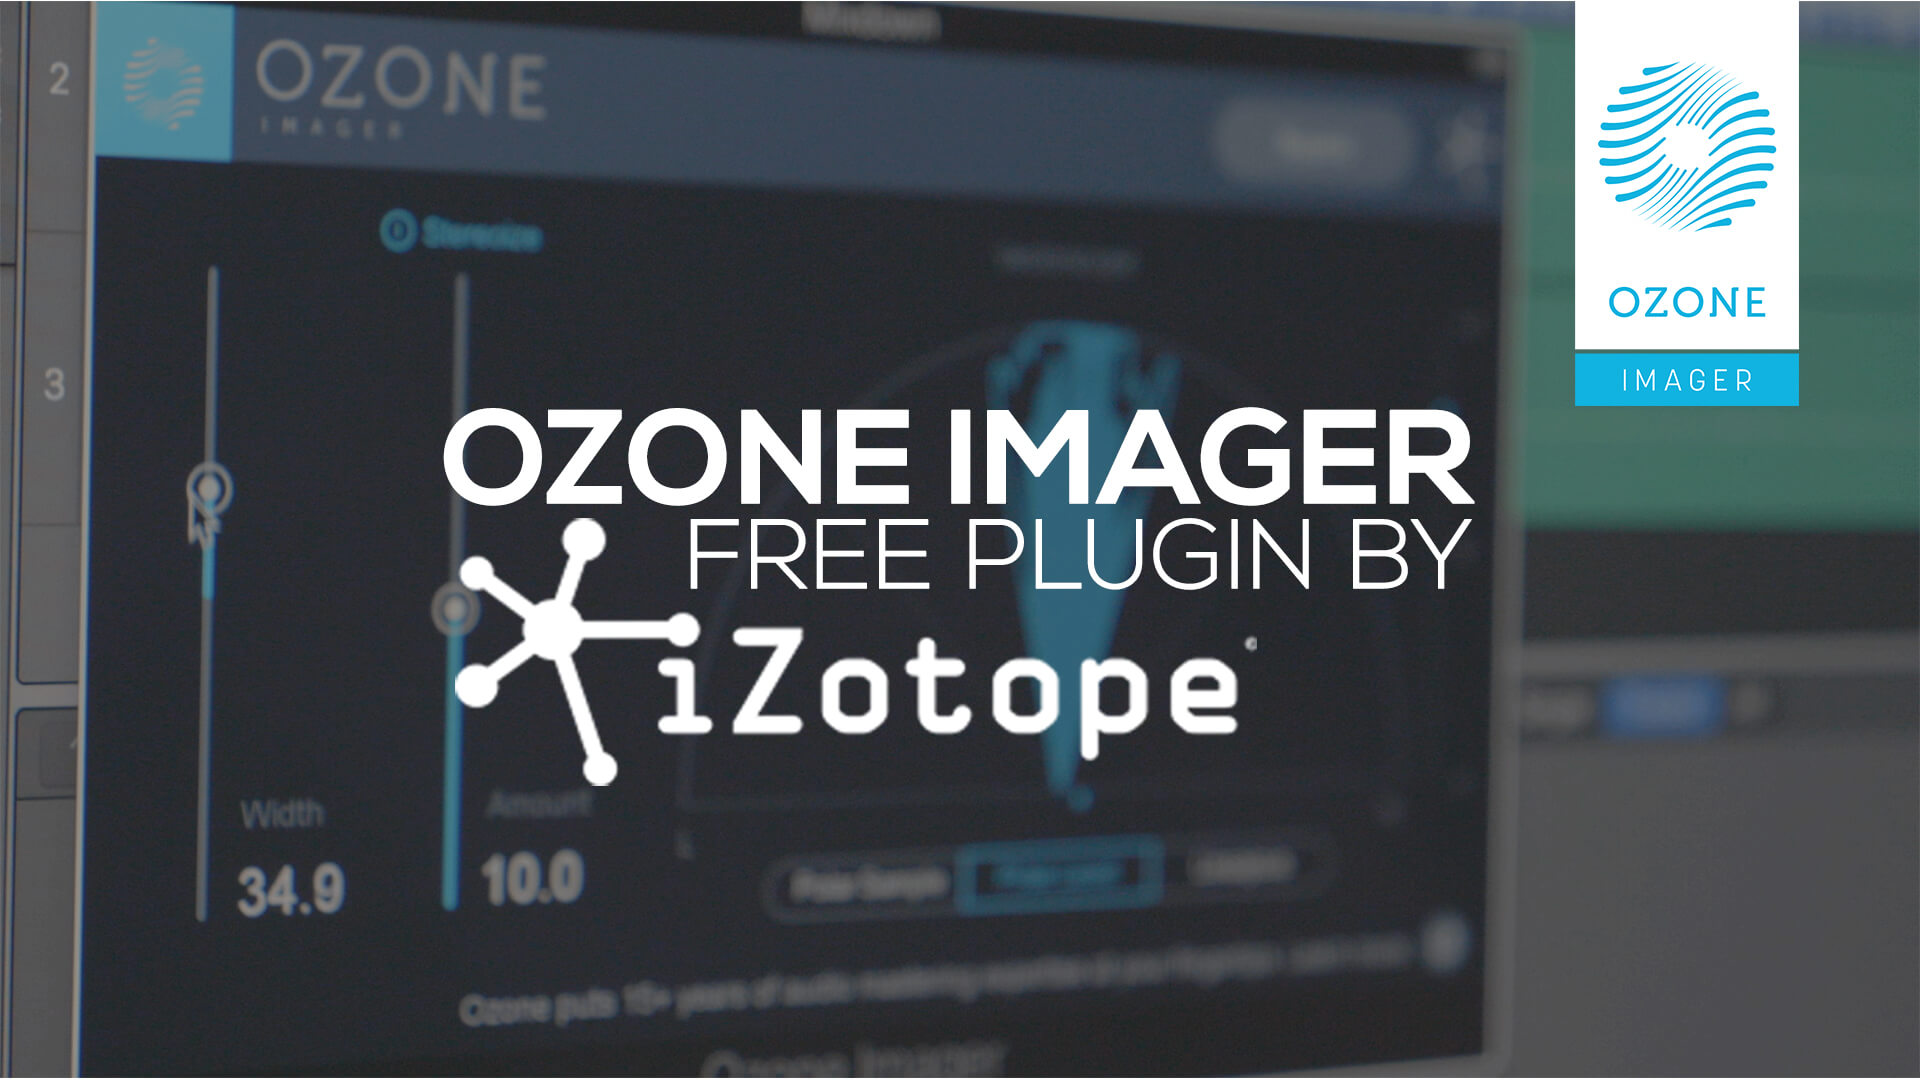 Ozone Imager – free plugin by iZotope!